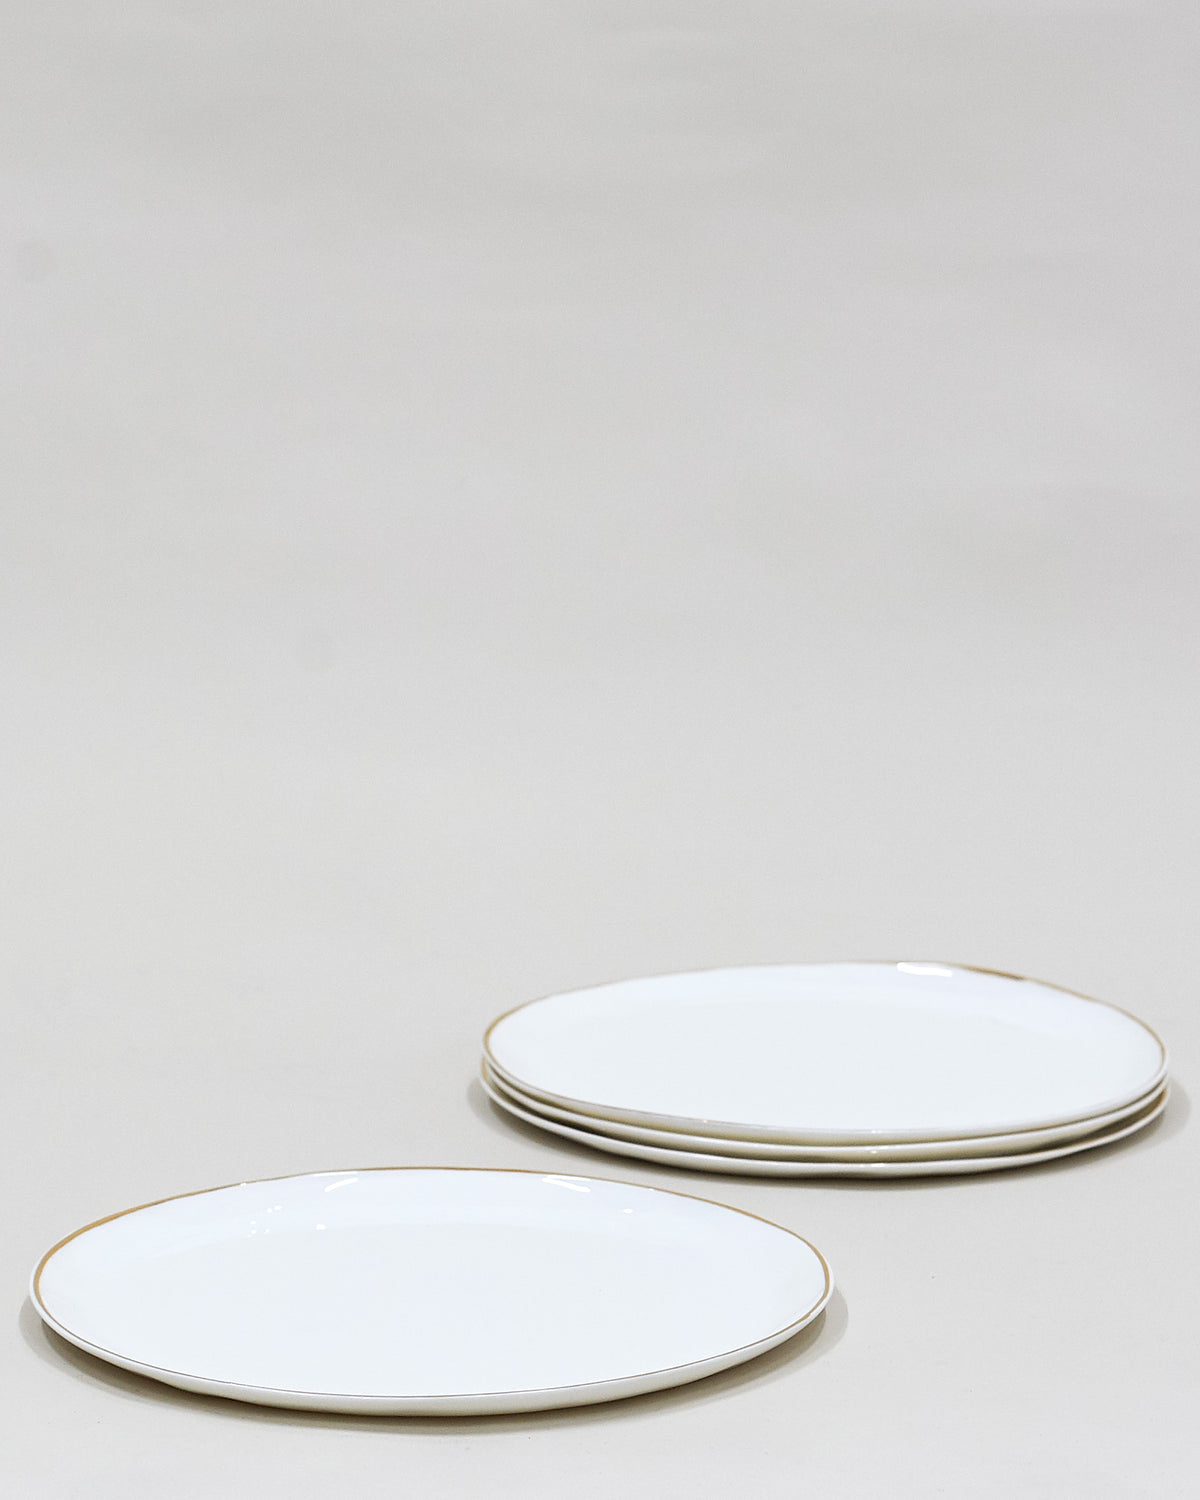 Set of 4 Gold Dinner Plates